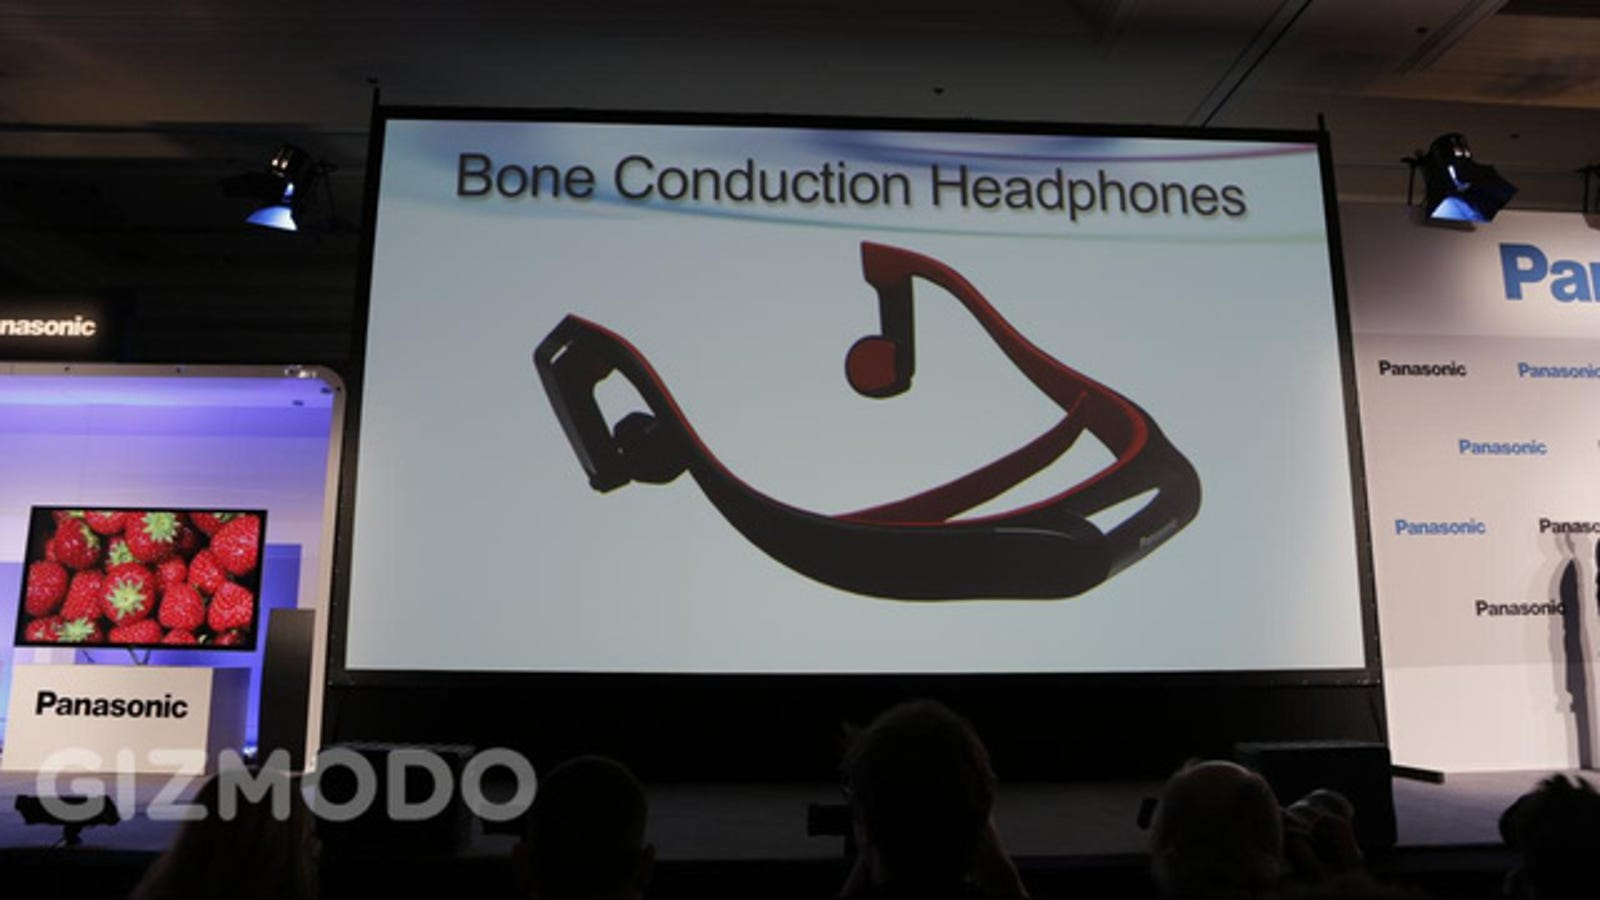 bulk colored earbuds - Panasonic's New Bone Conducting Headphones: WTH?